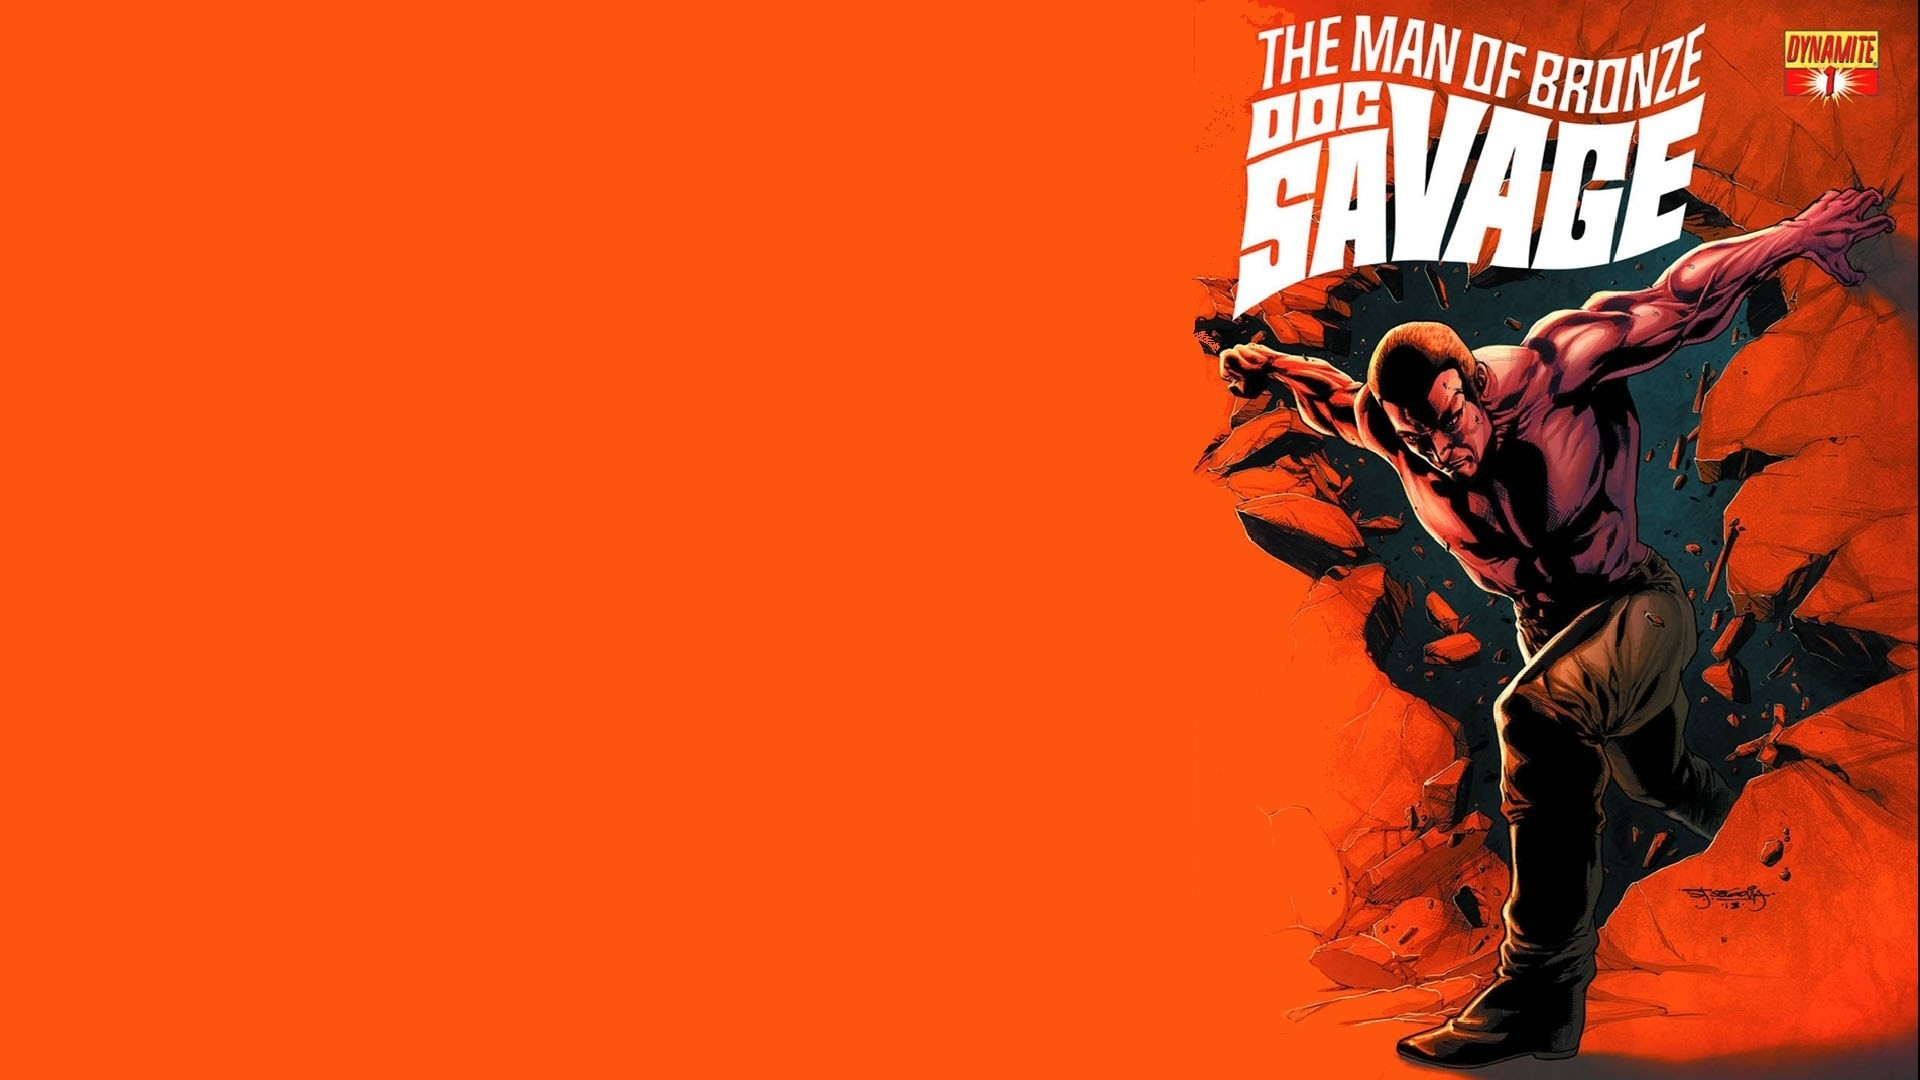 1920x1080 doc savage wallpaper ...